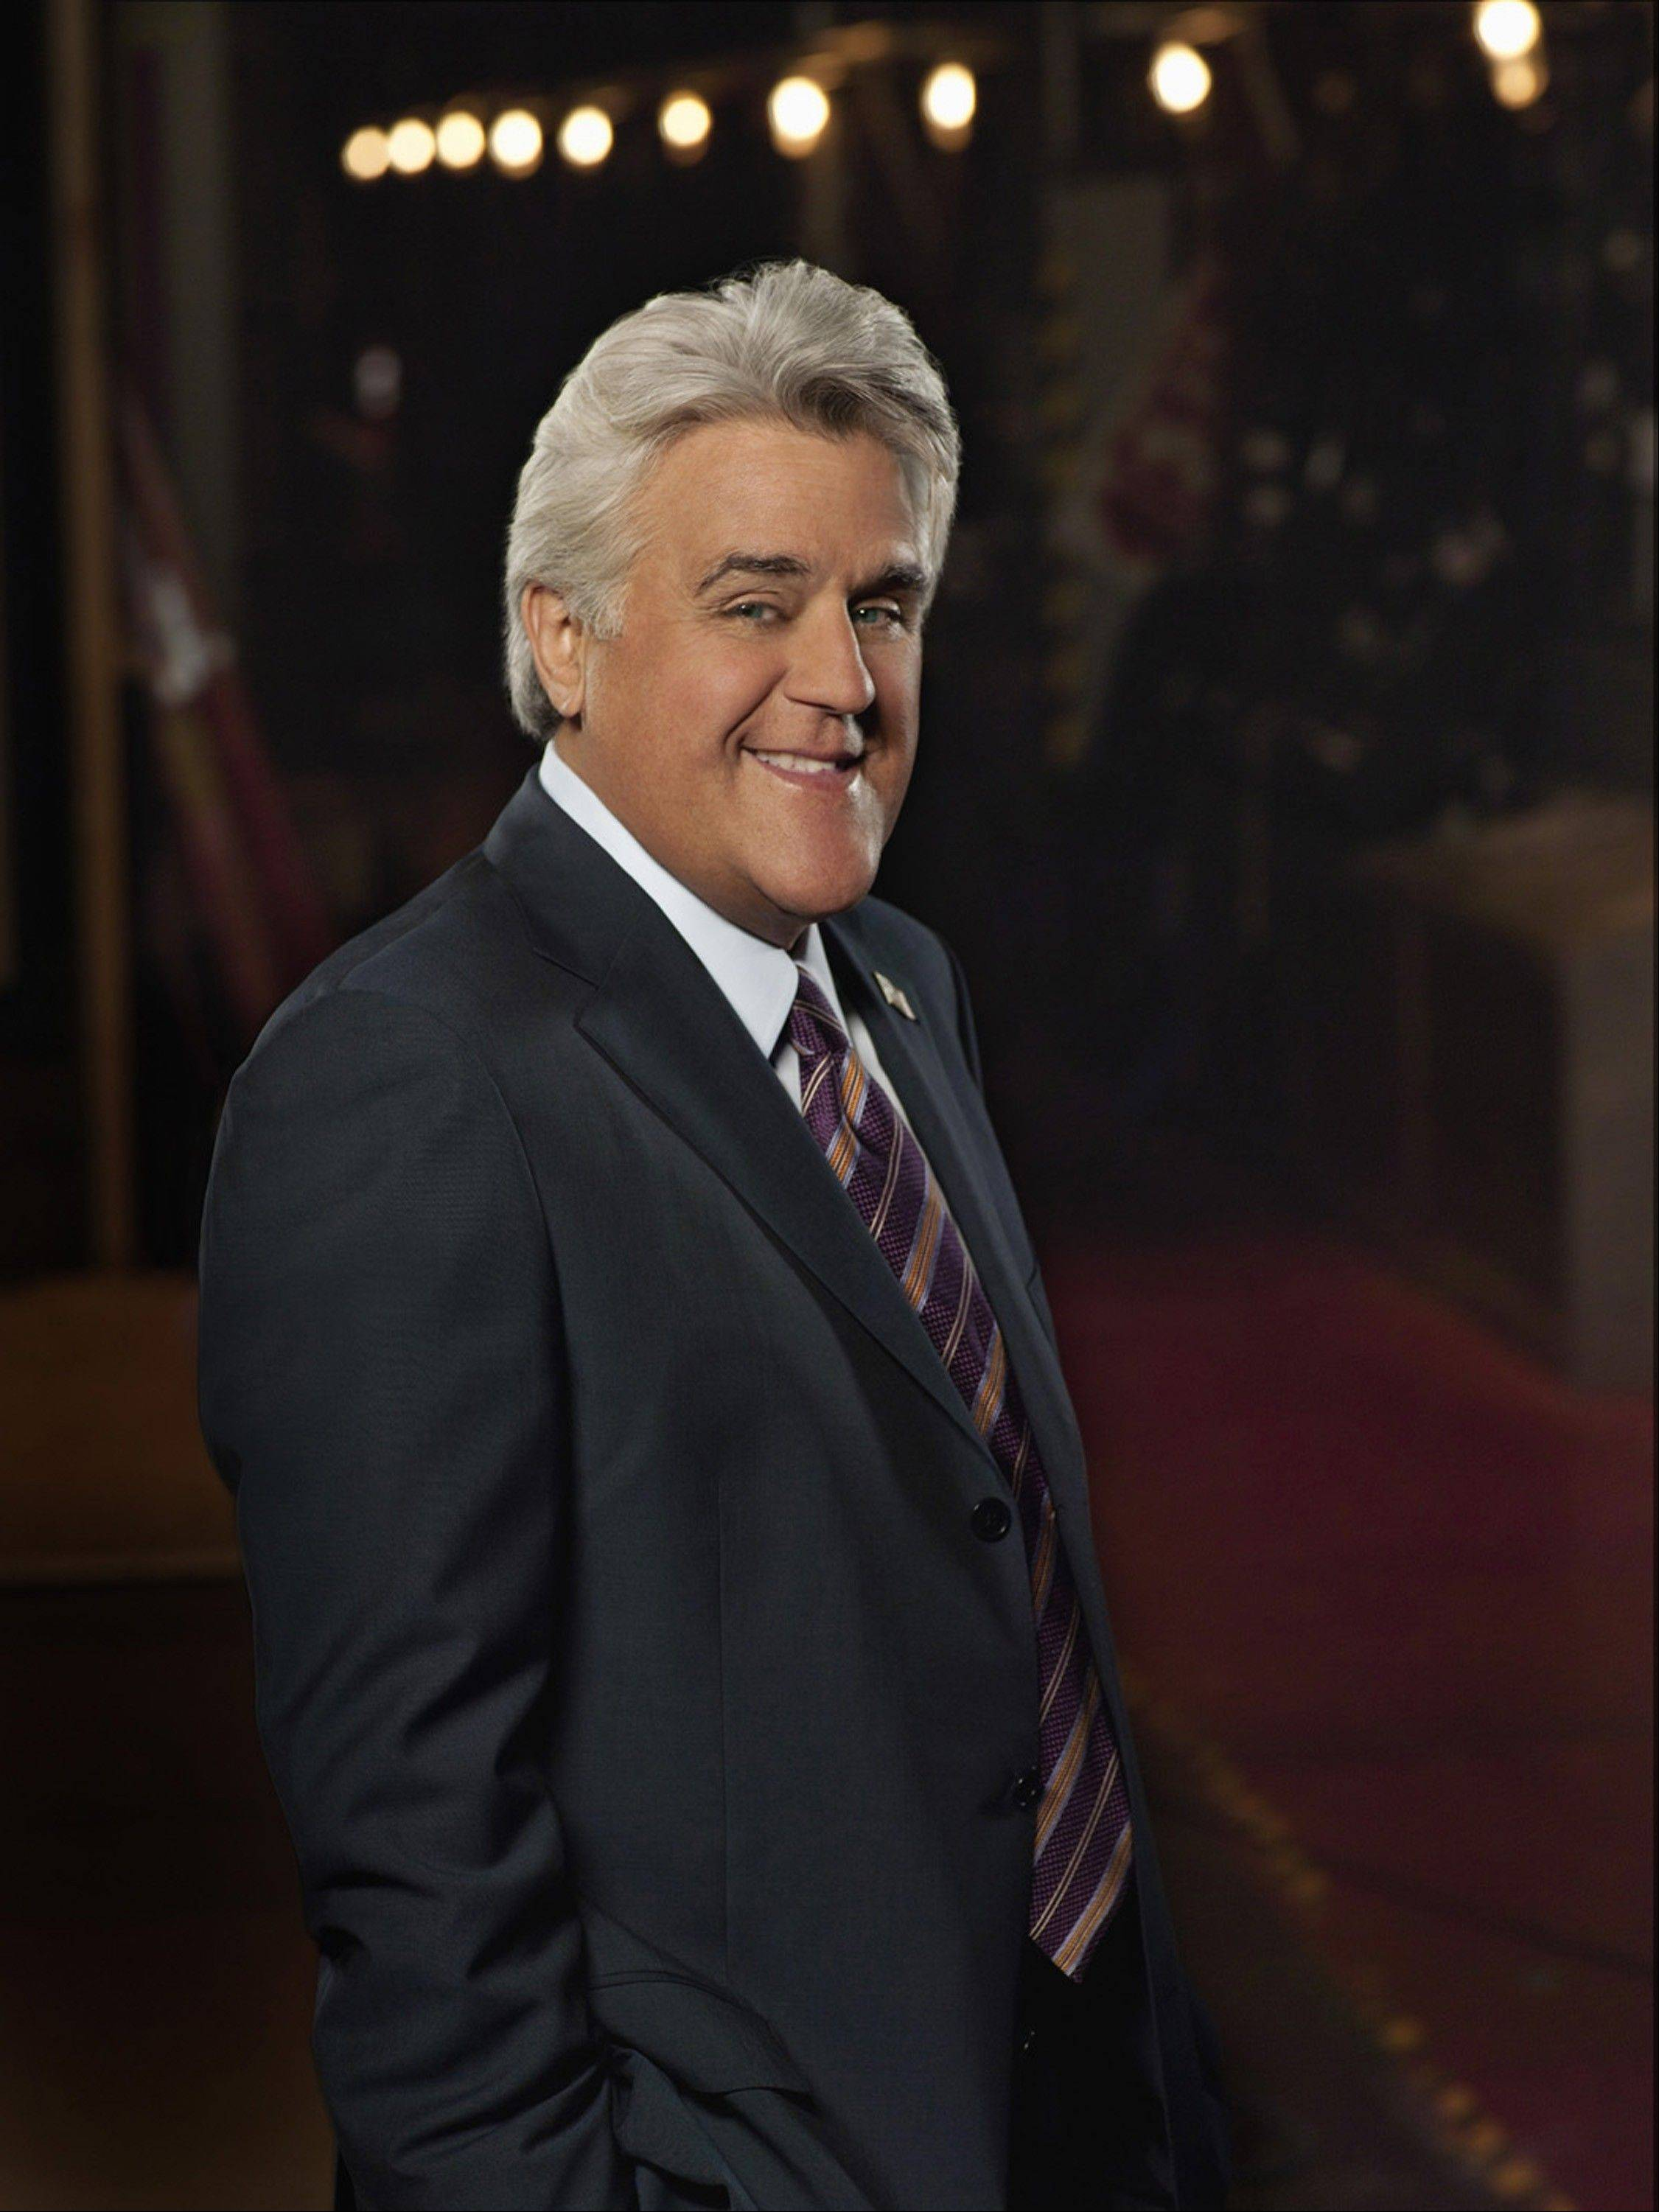 Jay Leno will perform Saturday, April 28, at the Cadillac Palace Theatre in Chicago at a benefit for OMNI Youth Services.